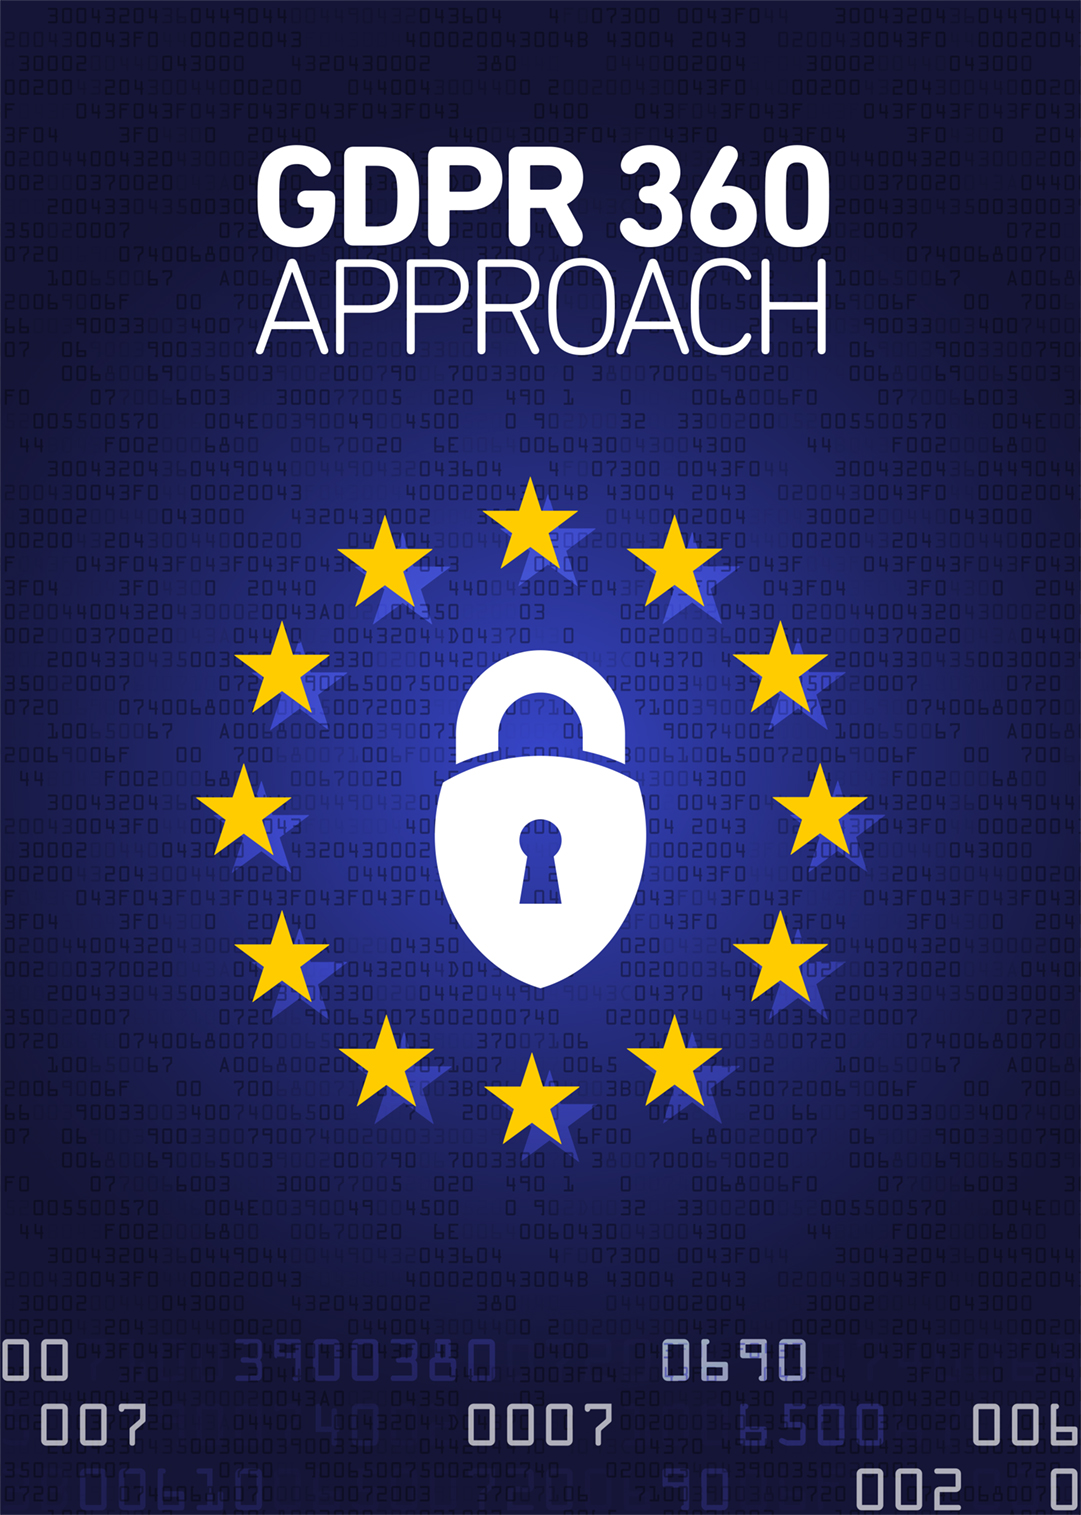 GDPR 360 Approach: Un nou concept inovativ oferit de Zipper Romania